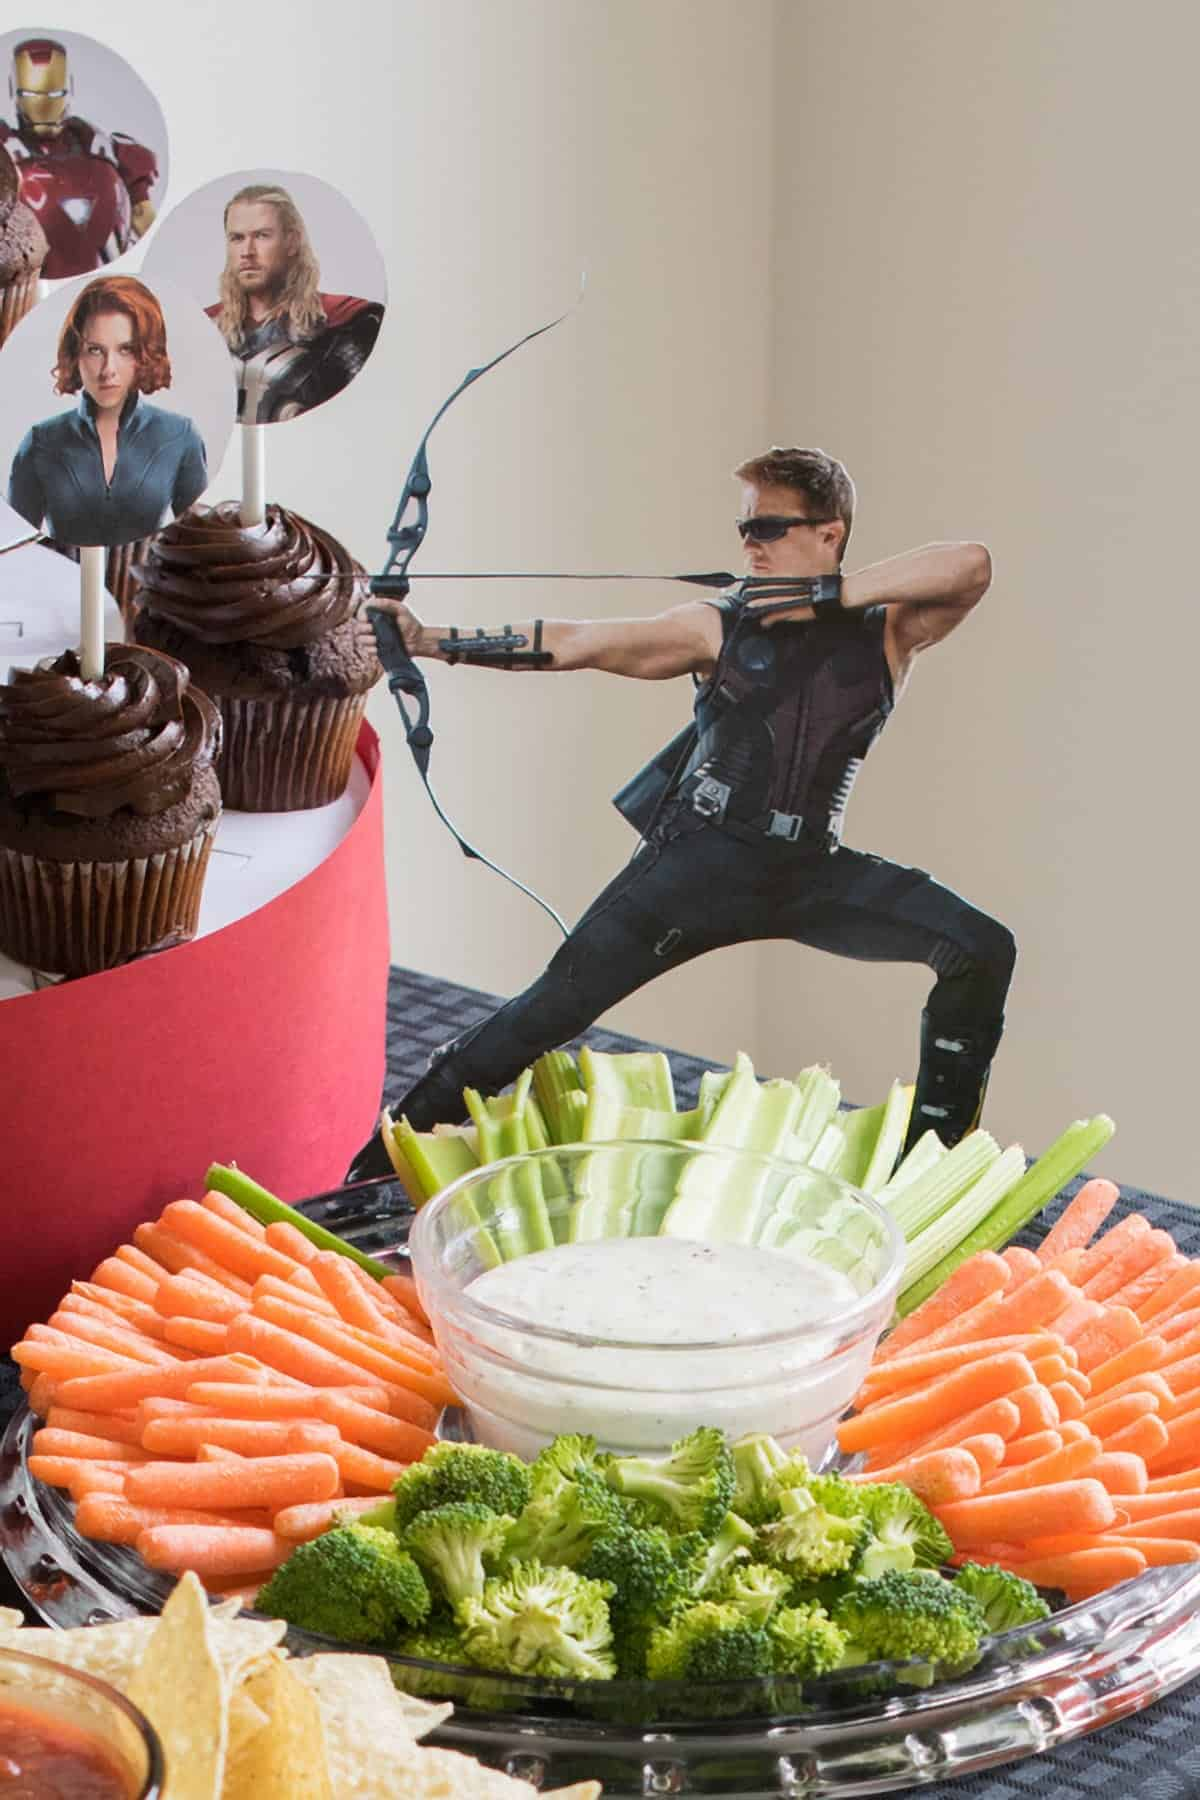 Avengers Party table top with chocolate cupcake display and vegetable tray with character cutout toppers.